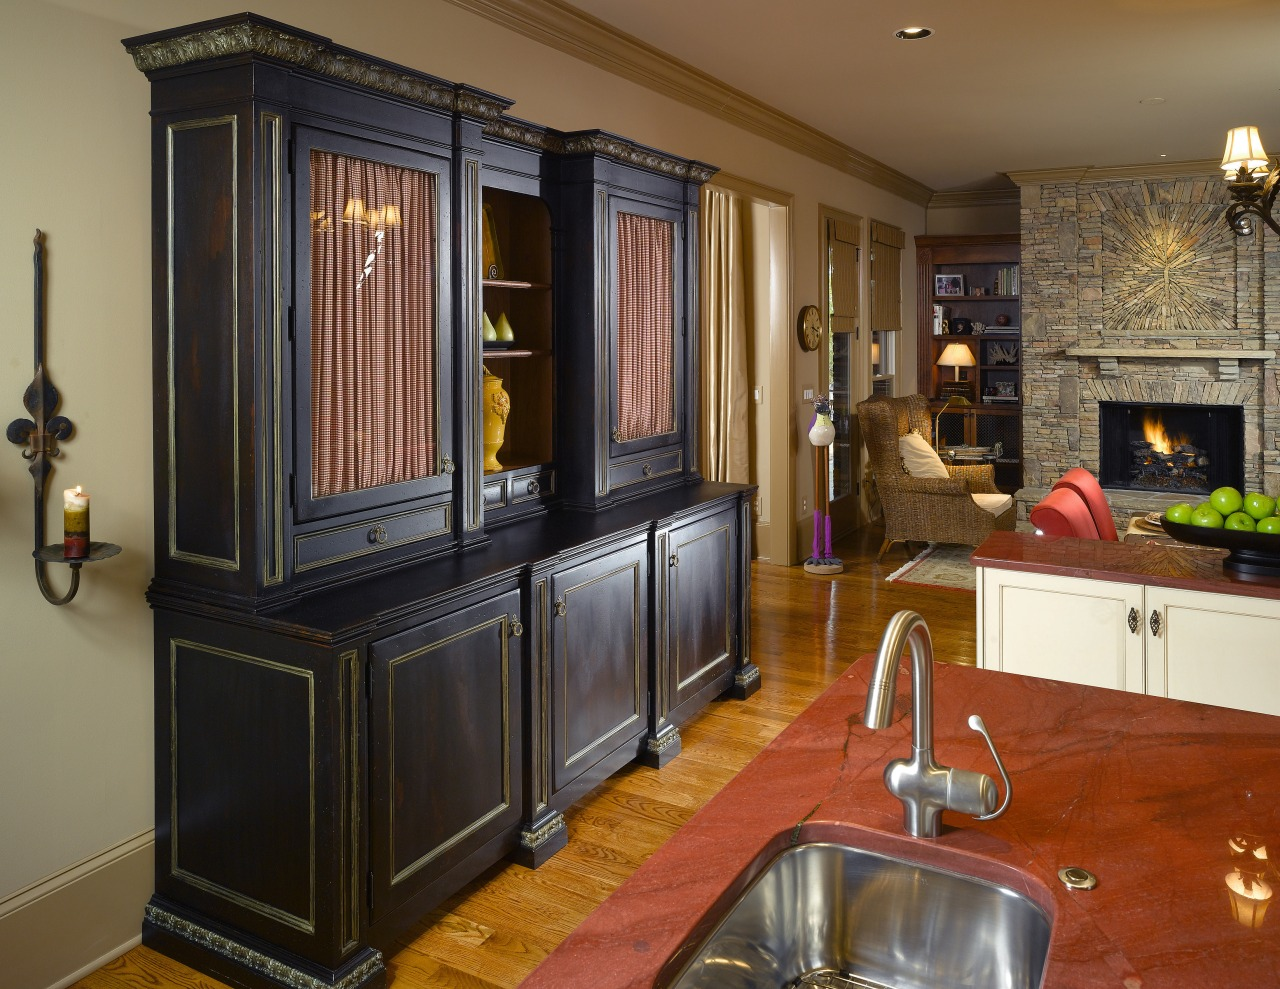 A view of this kitchen designed by Mcfarlane cabinetry, countertop, flooring, furniture, interior design, kitchen, living room, room, brown, black